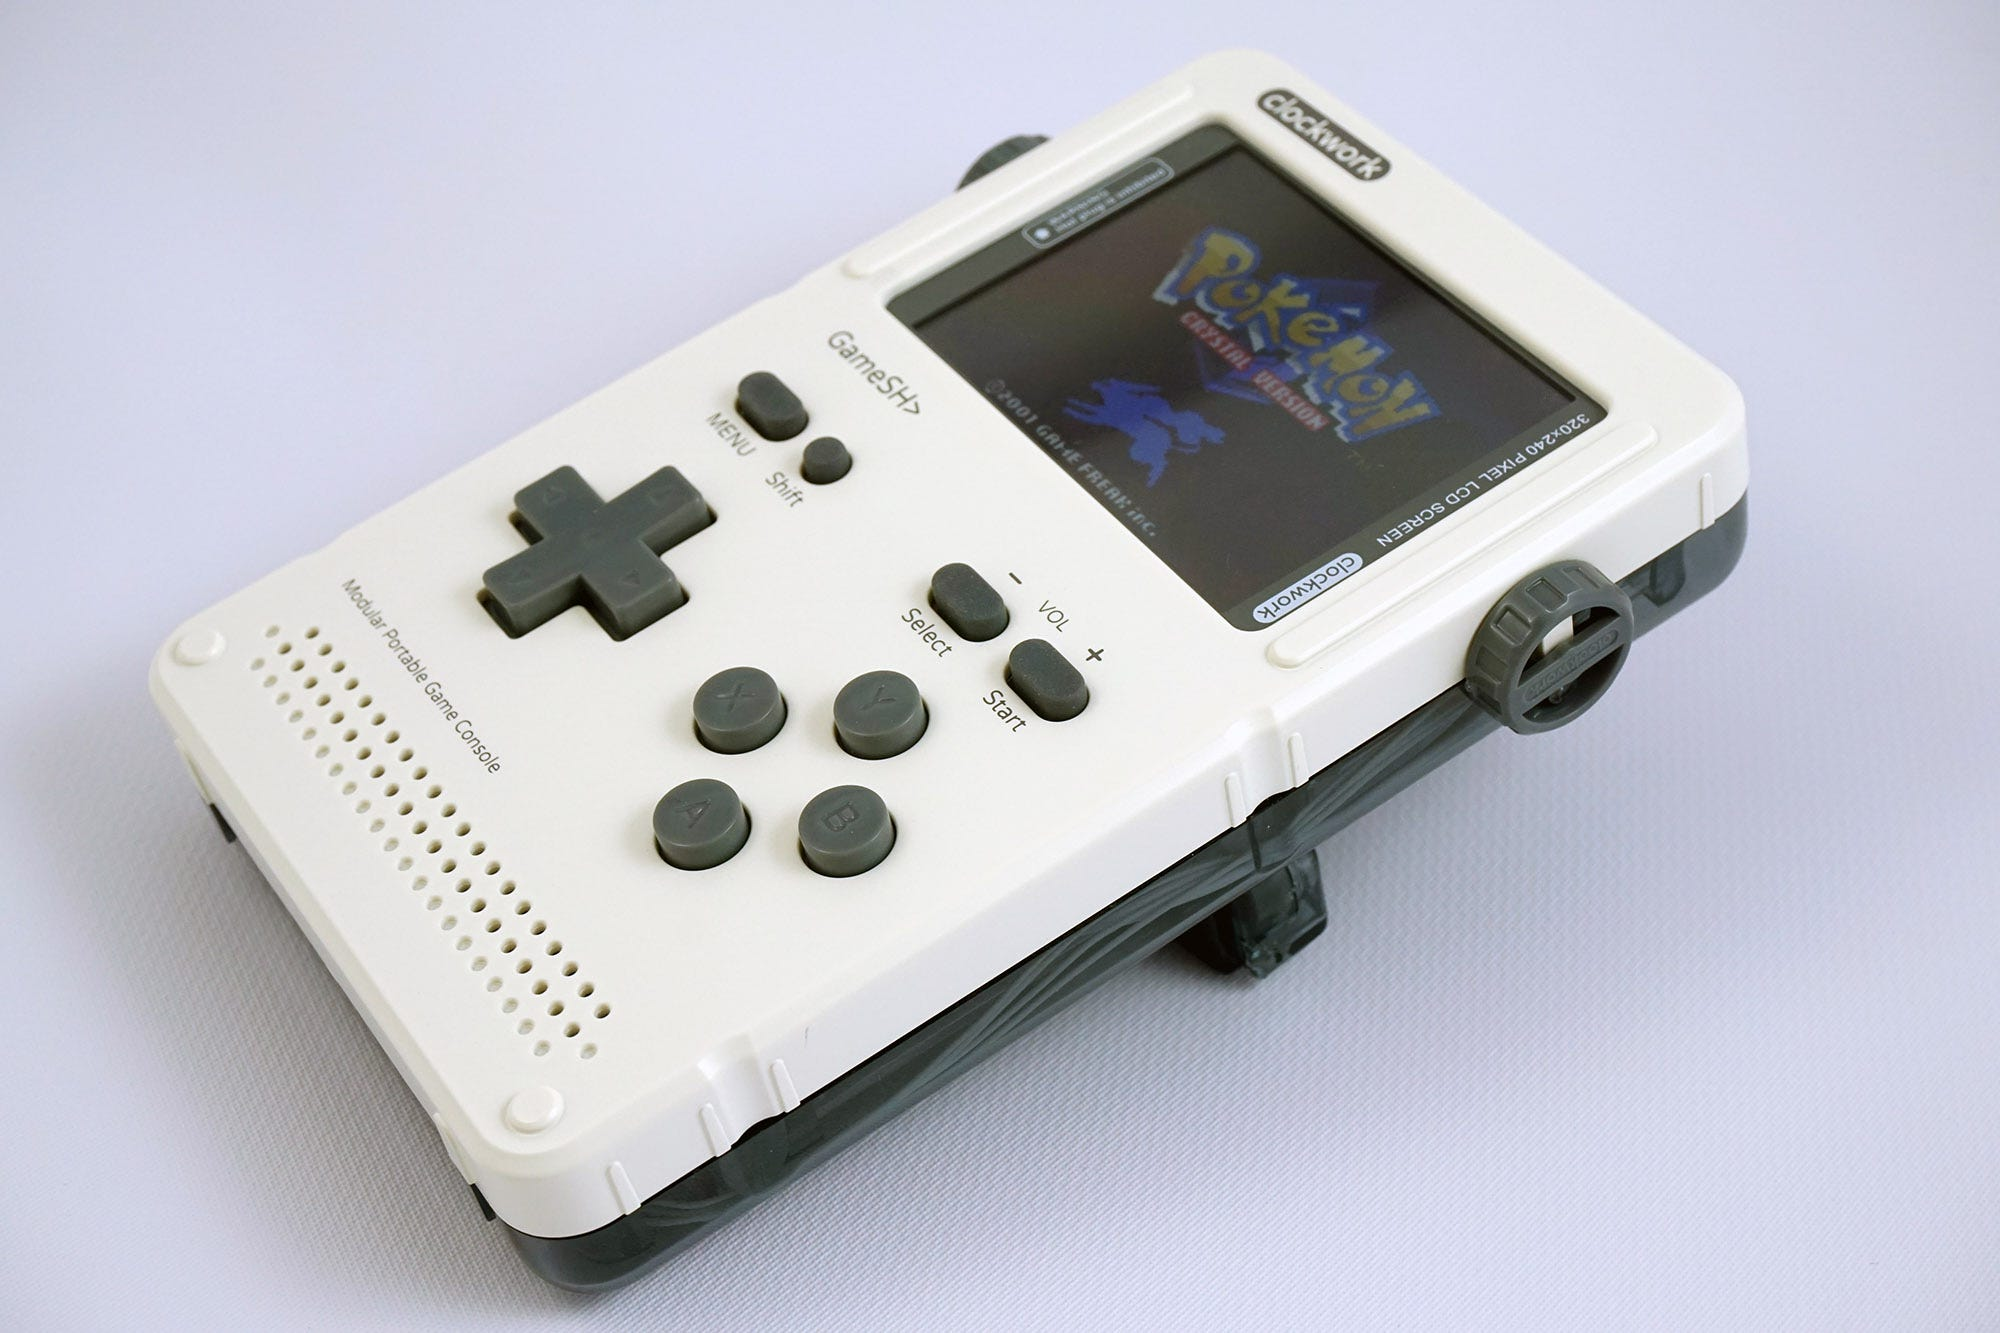 The GameShell, running a Game Boy emulator, with the extra button bar in place.